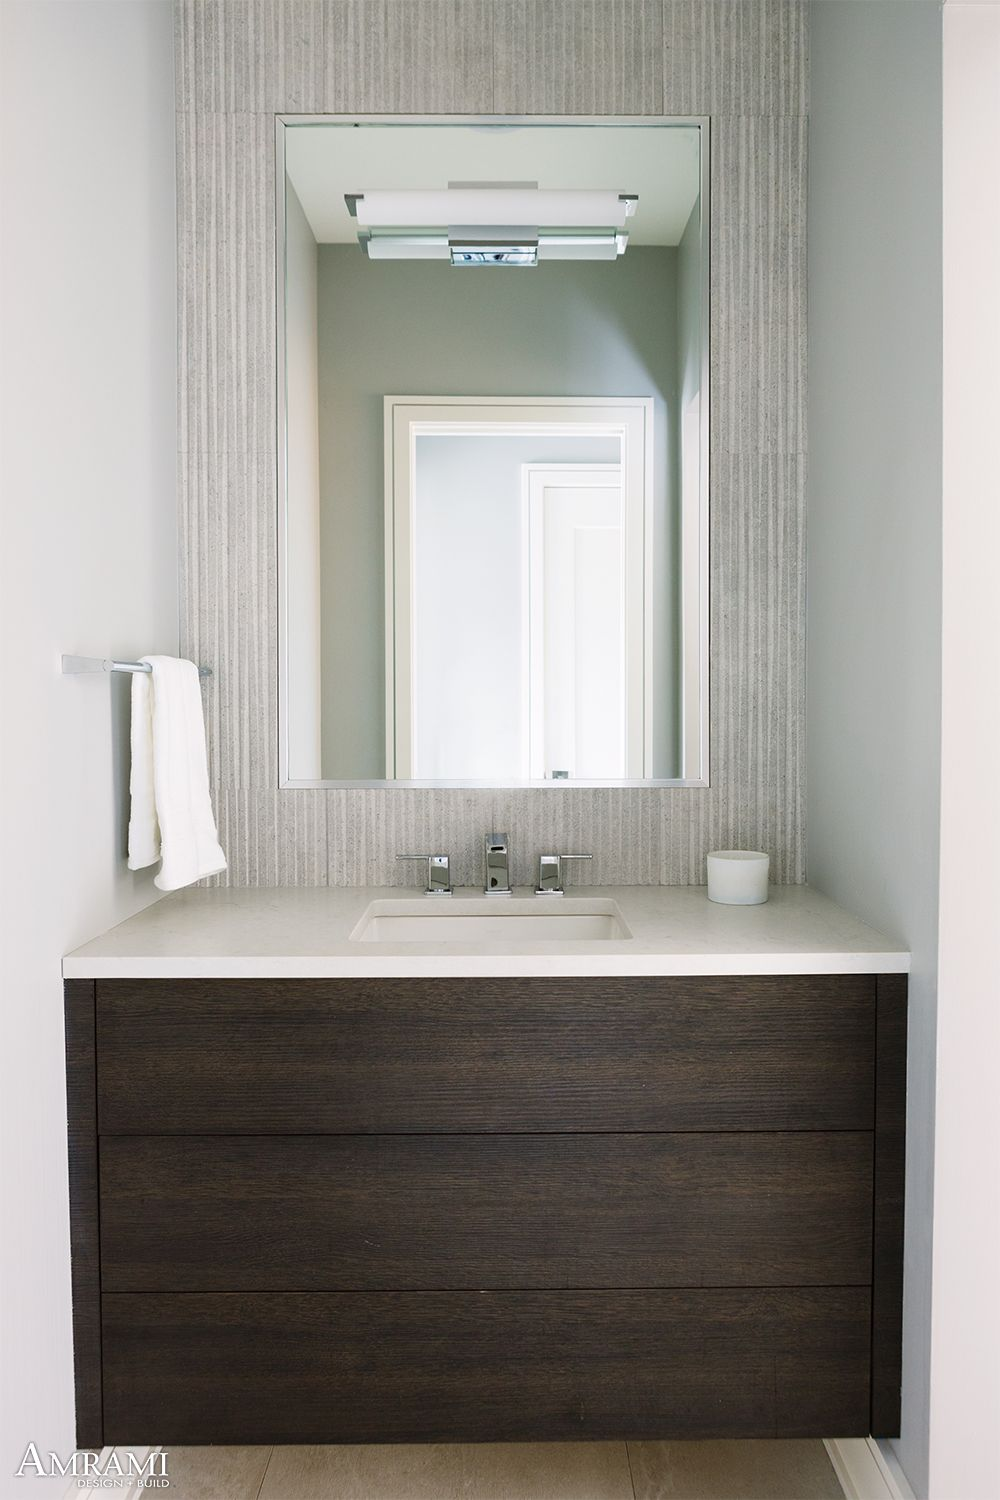 These Bathroom Vanities Feature The Push Latch Drawers Which Bring Both A Luxurious Feel And An In 2020 With Images Wood Bathroom Vanity Custom Bathroom Designs Dark Wood Bathroom